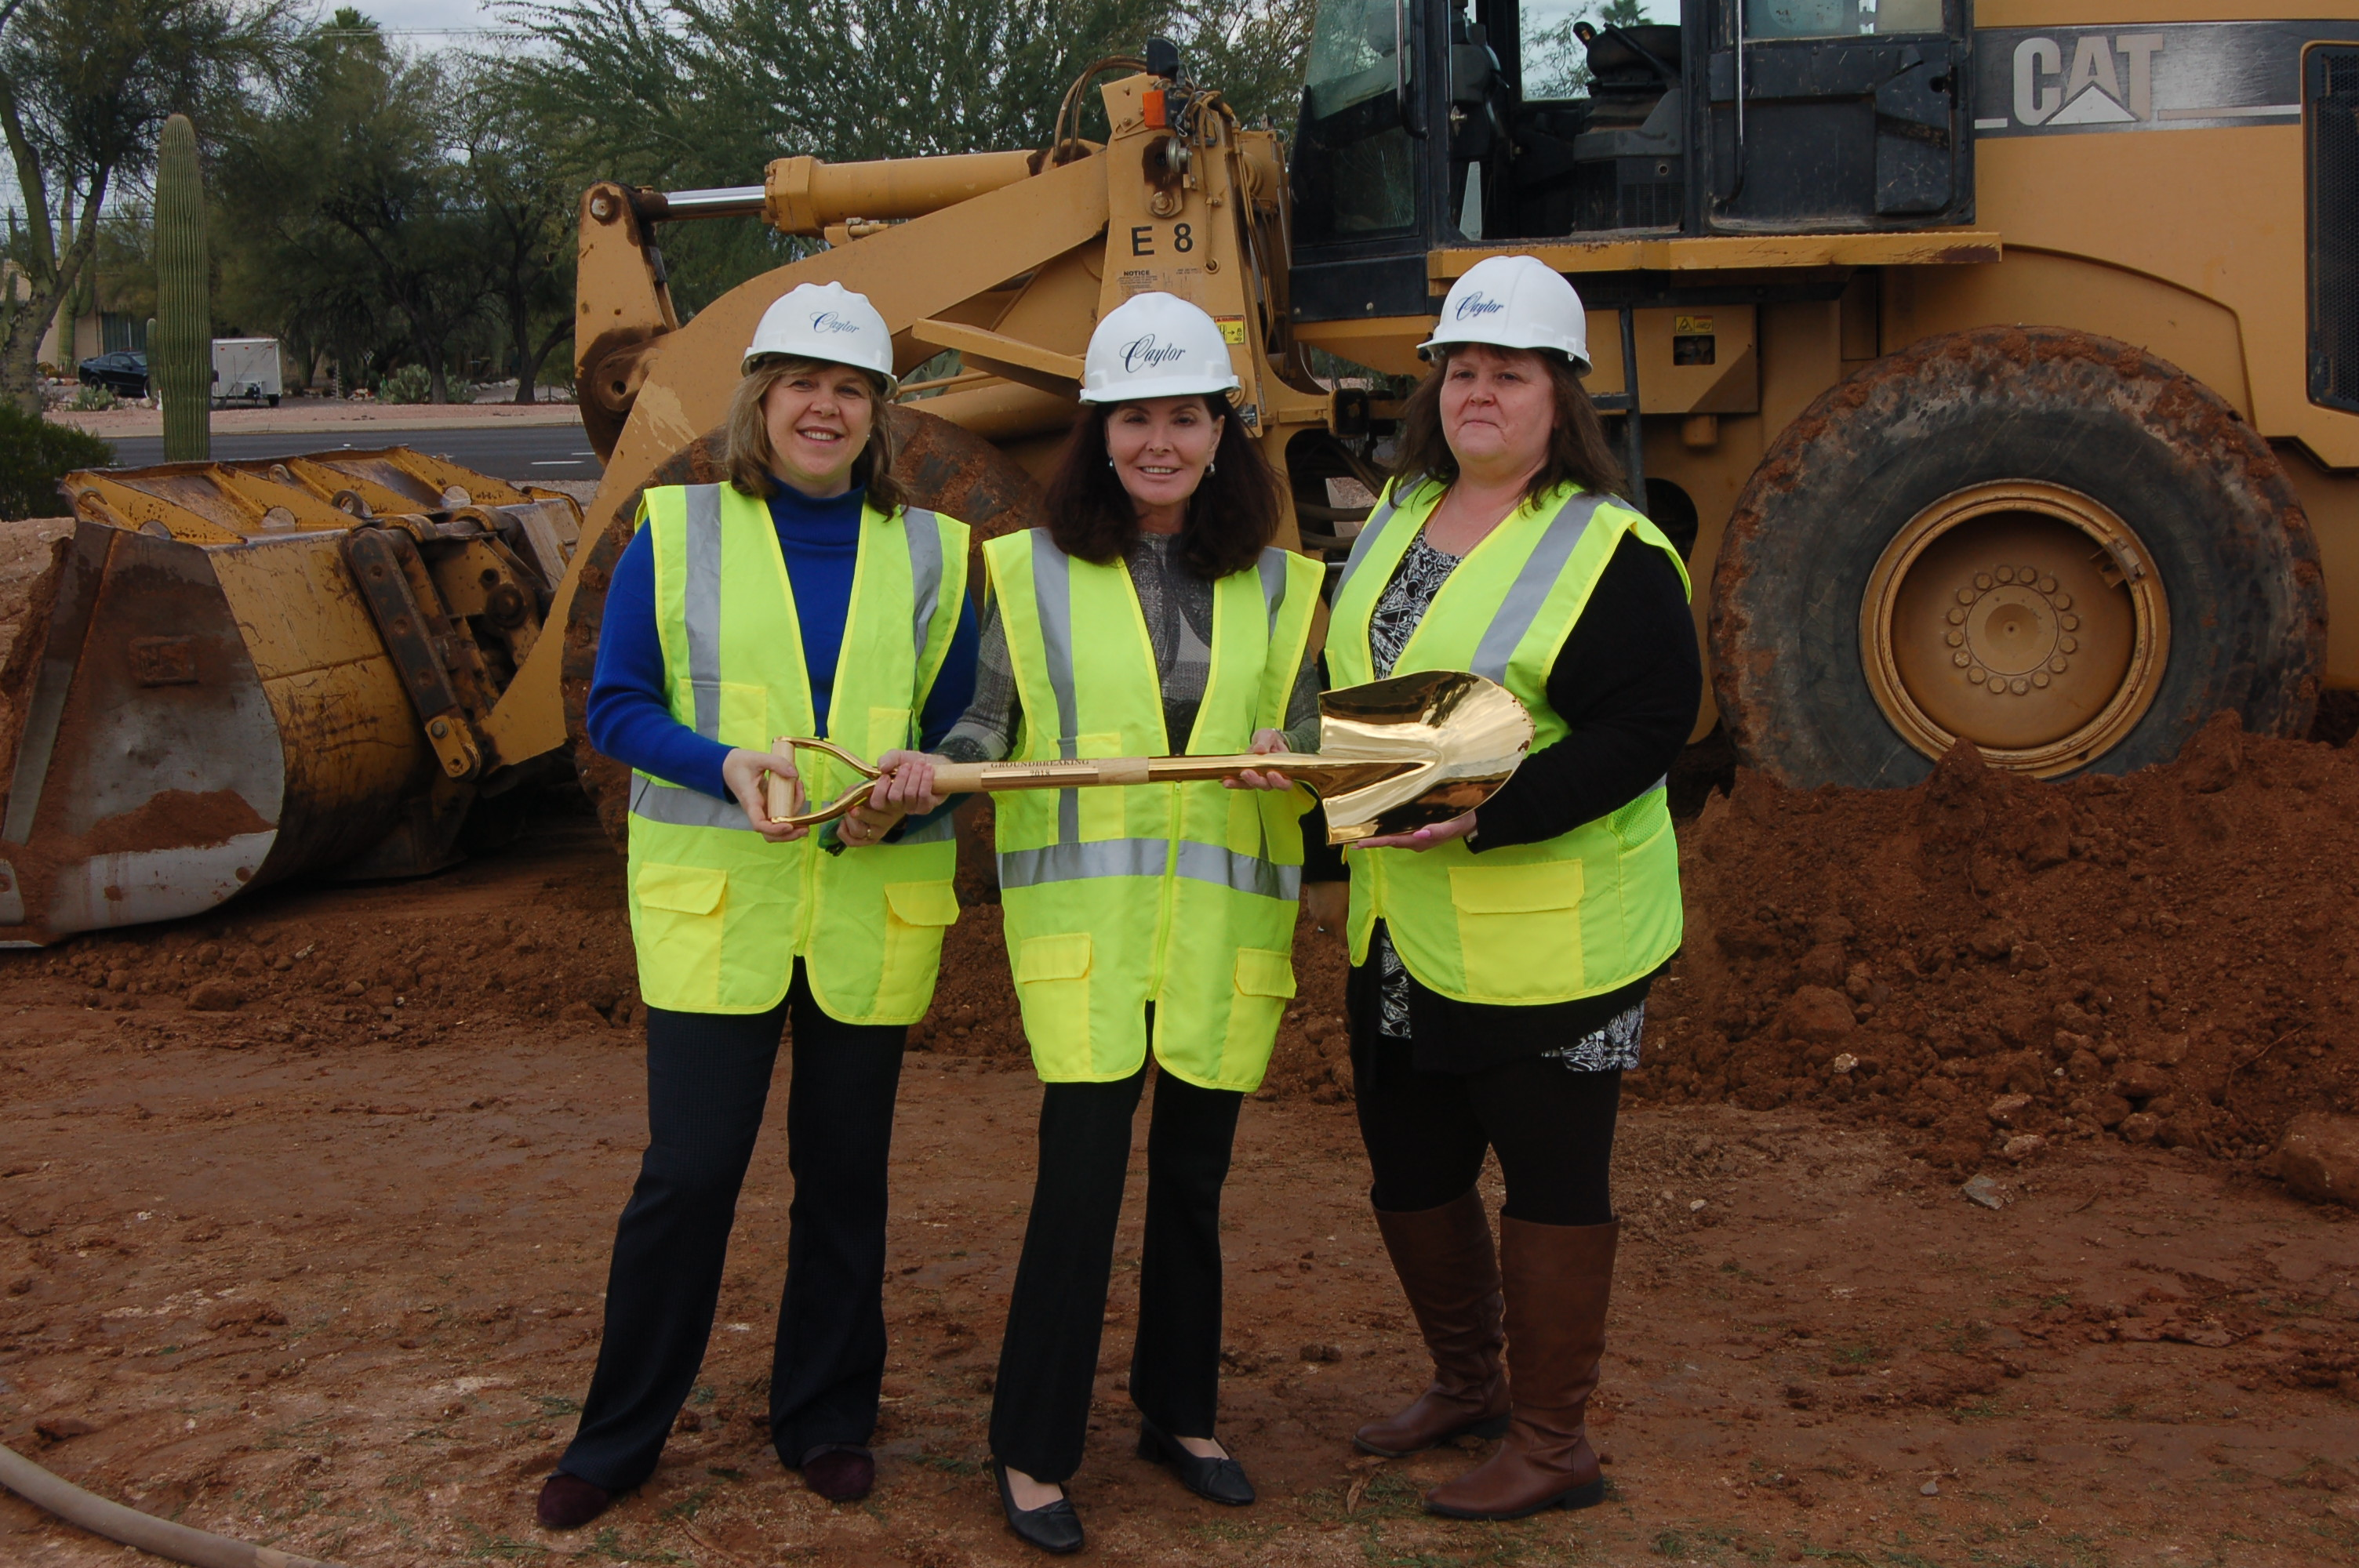 Our Nurse Practitioner, Tatsiana, Dr. Courtney, and our office manager, Denise at the new site